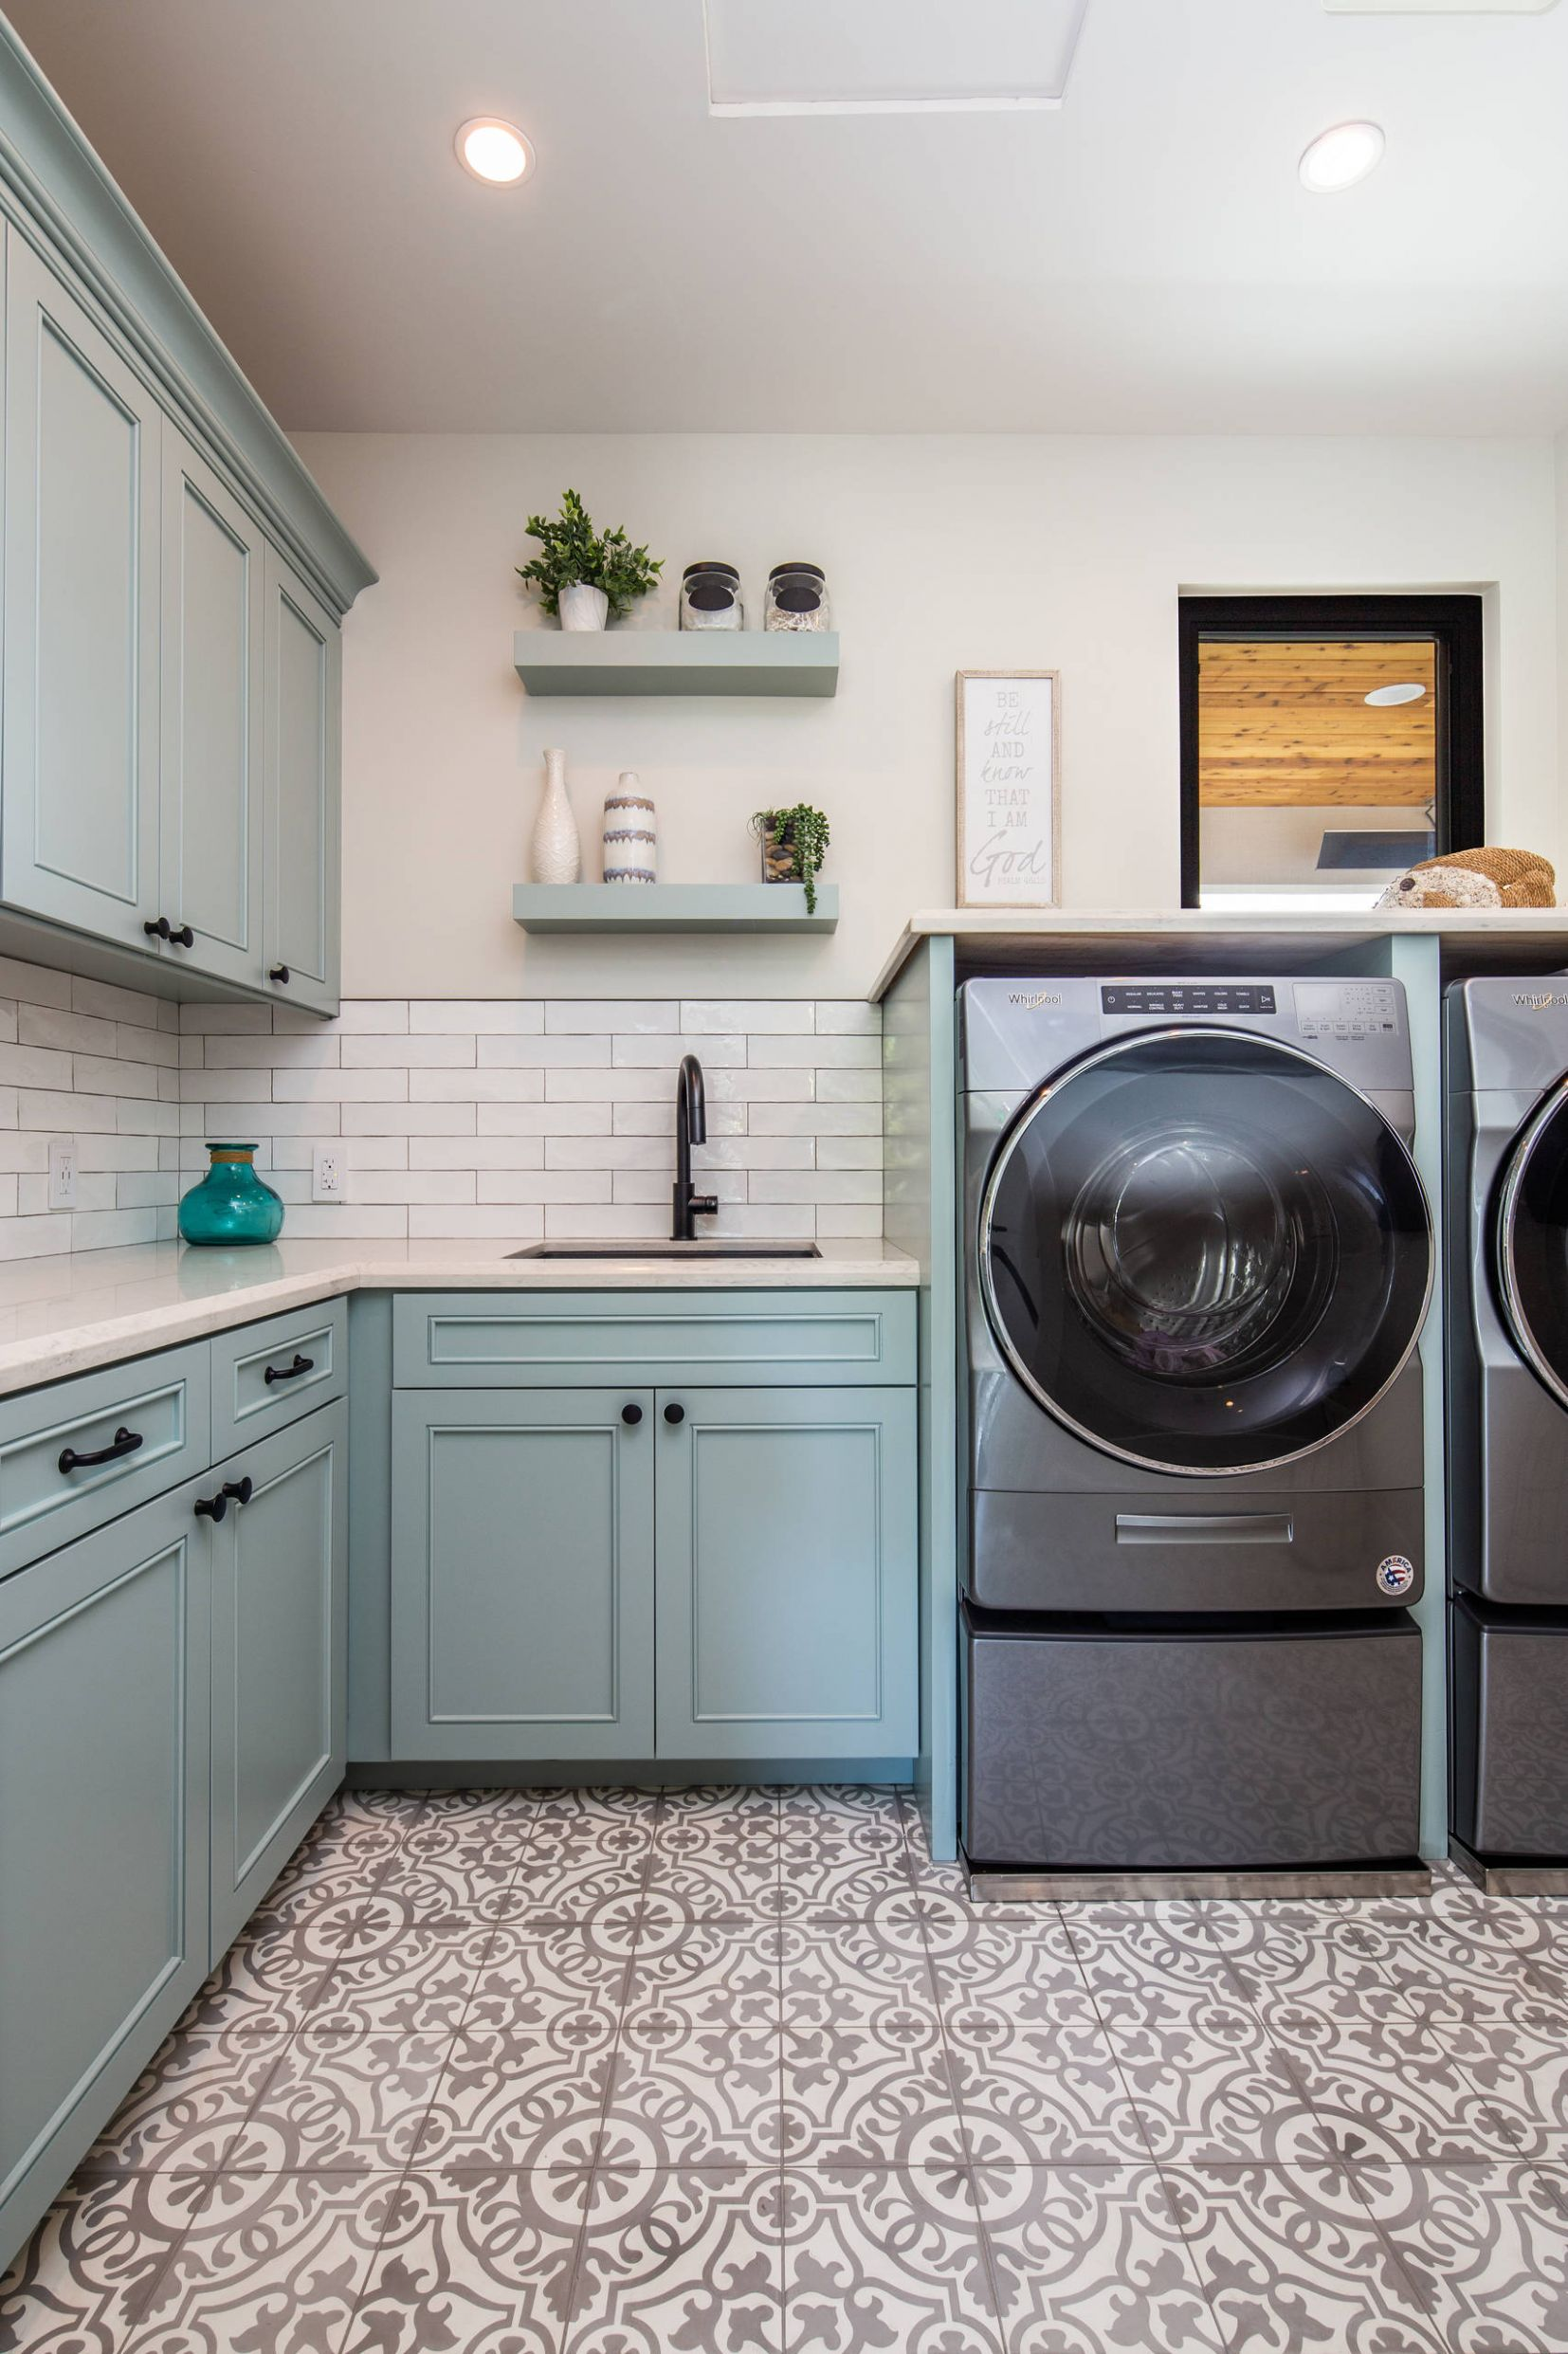 8 Beautiful L-Shaped Laundry Room Pictures & Ideas | Houzz - laundry room ideas l shaped